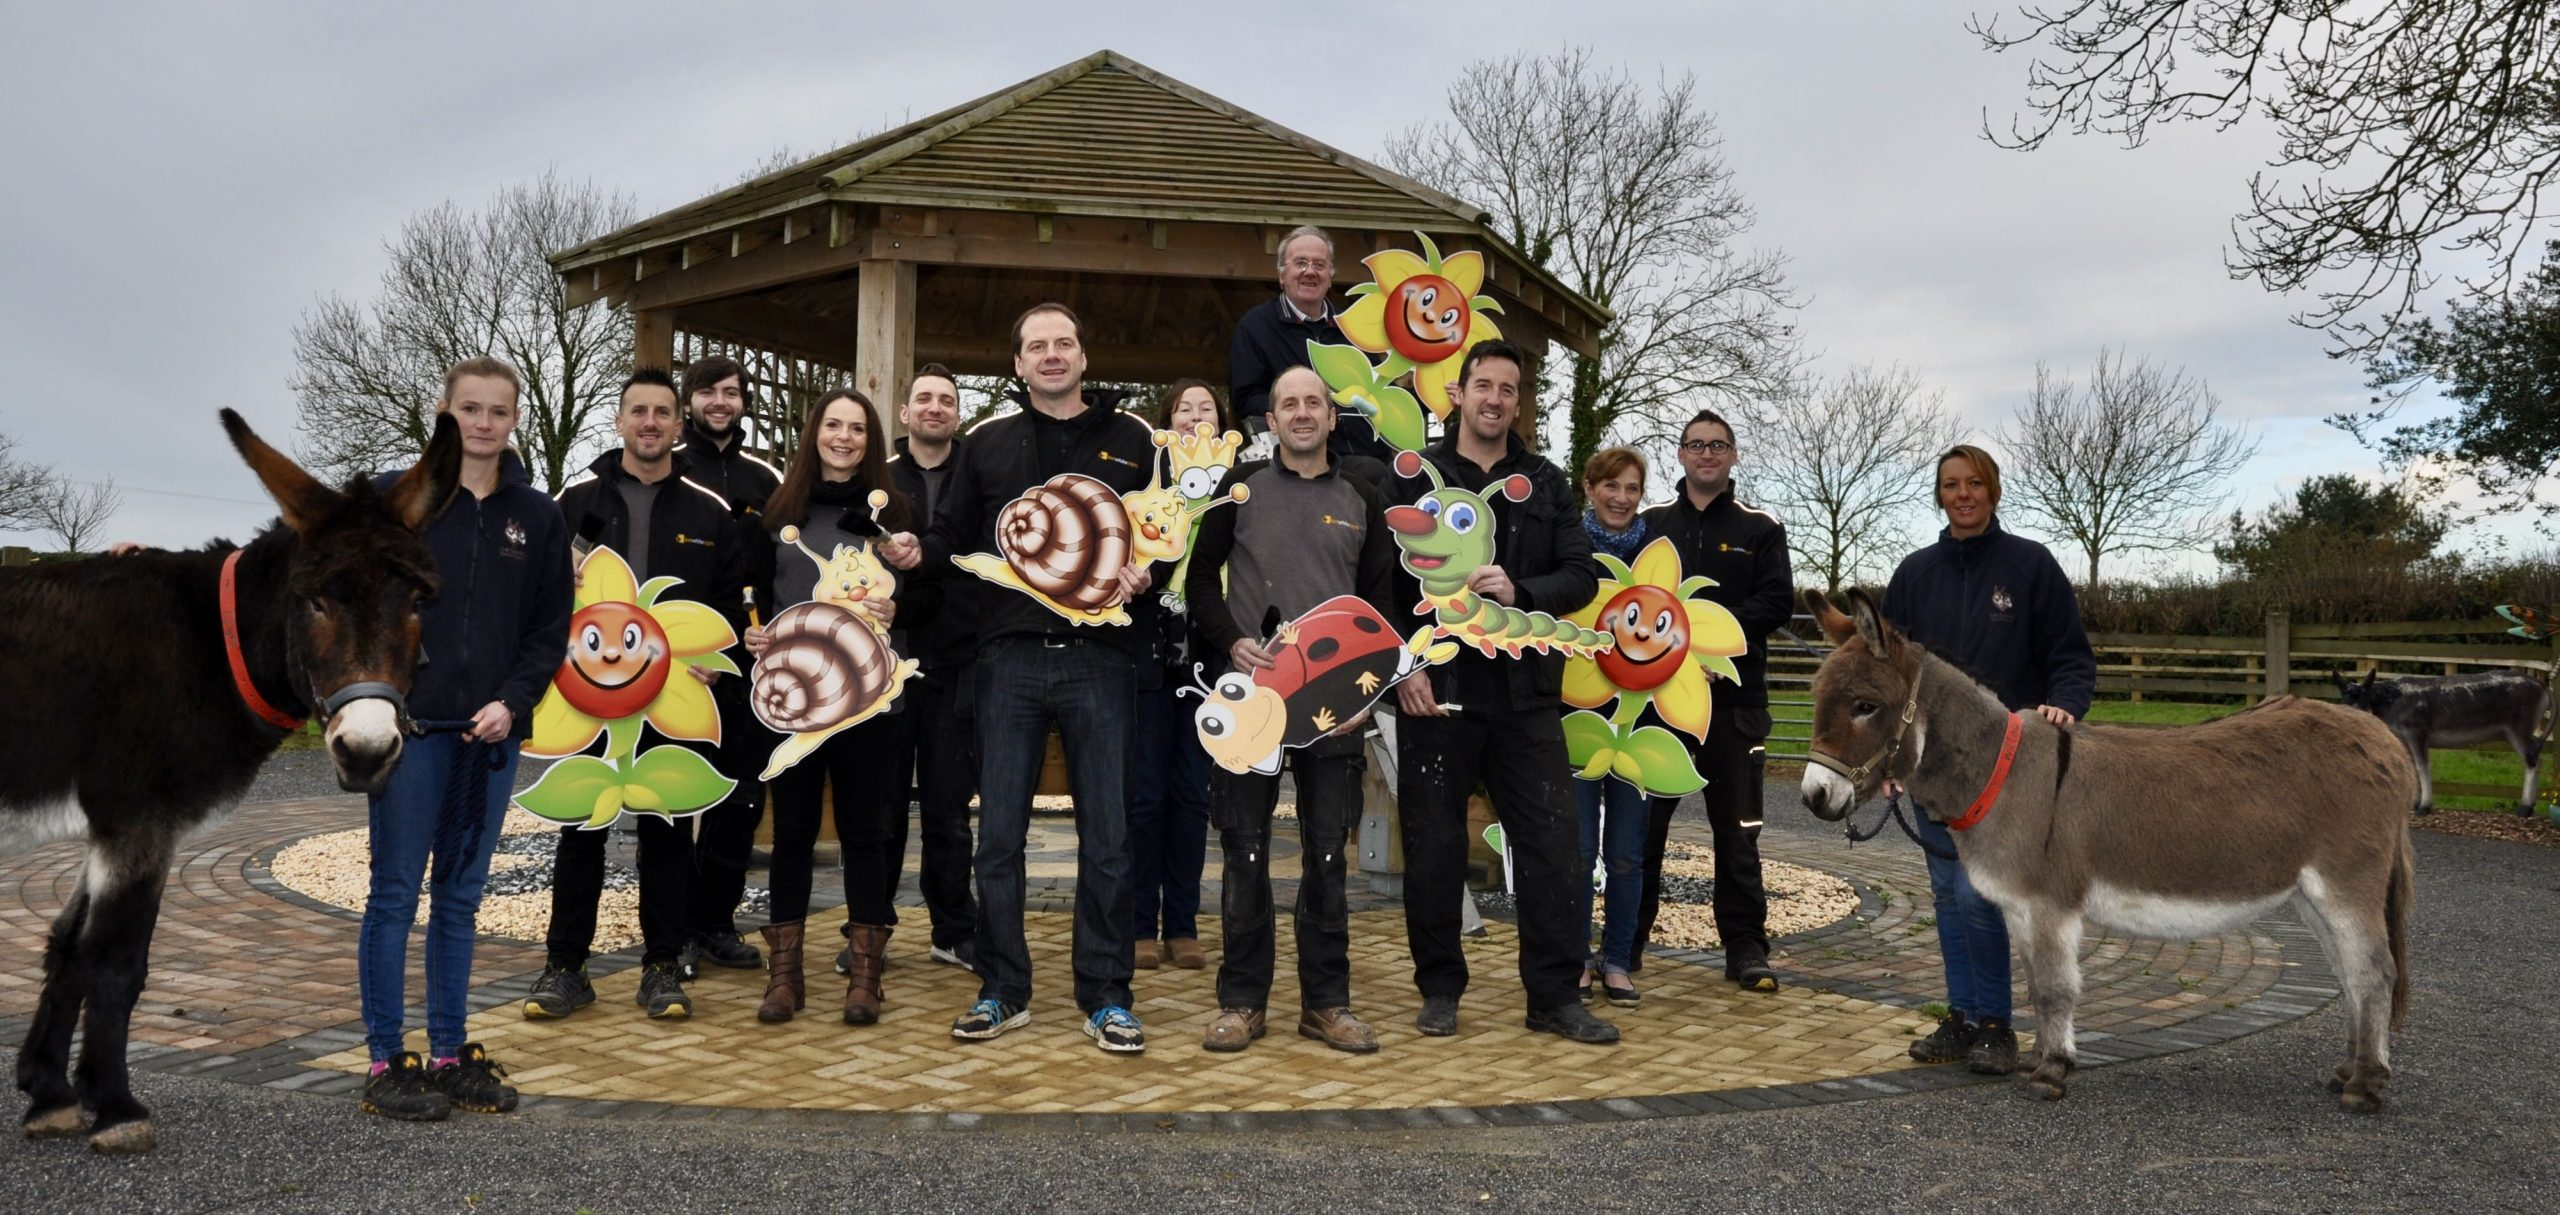 Sign makers donate 50 hours of labour to The Donkey Sanctuary